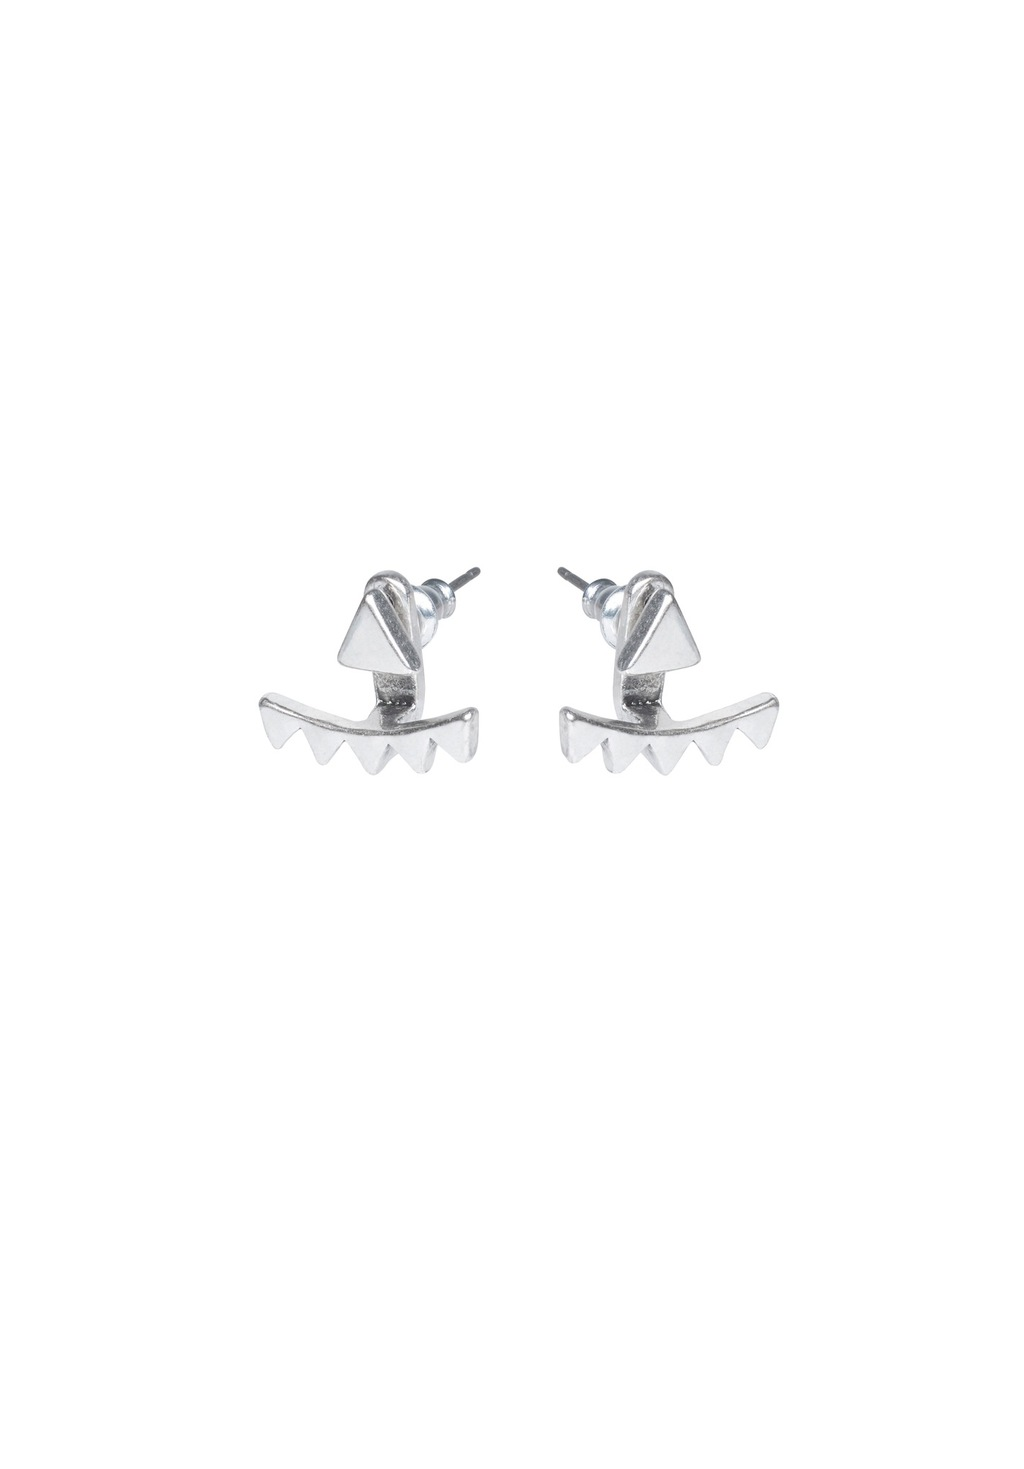 Triangle Stud Ear Cuffs - predominant colour: silver; occasions: casual, creative work; style: stud; length: short; size: small/fine; material: chain/metal; fastening: pierced; finish: metallic; wardrobe: basic; season: a/w 2016